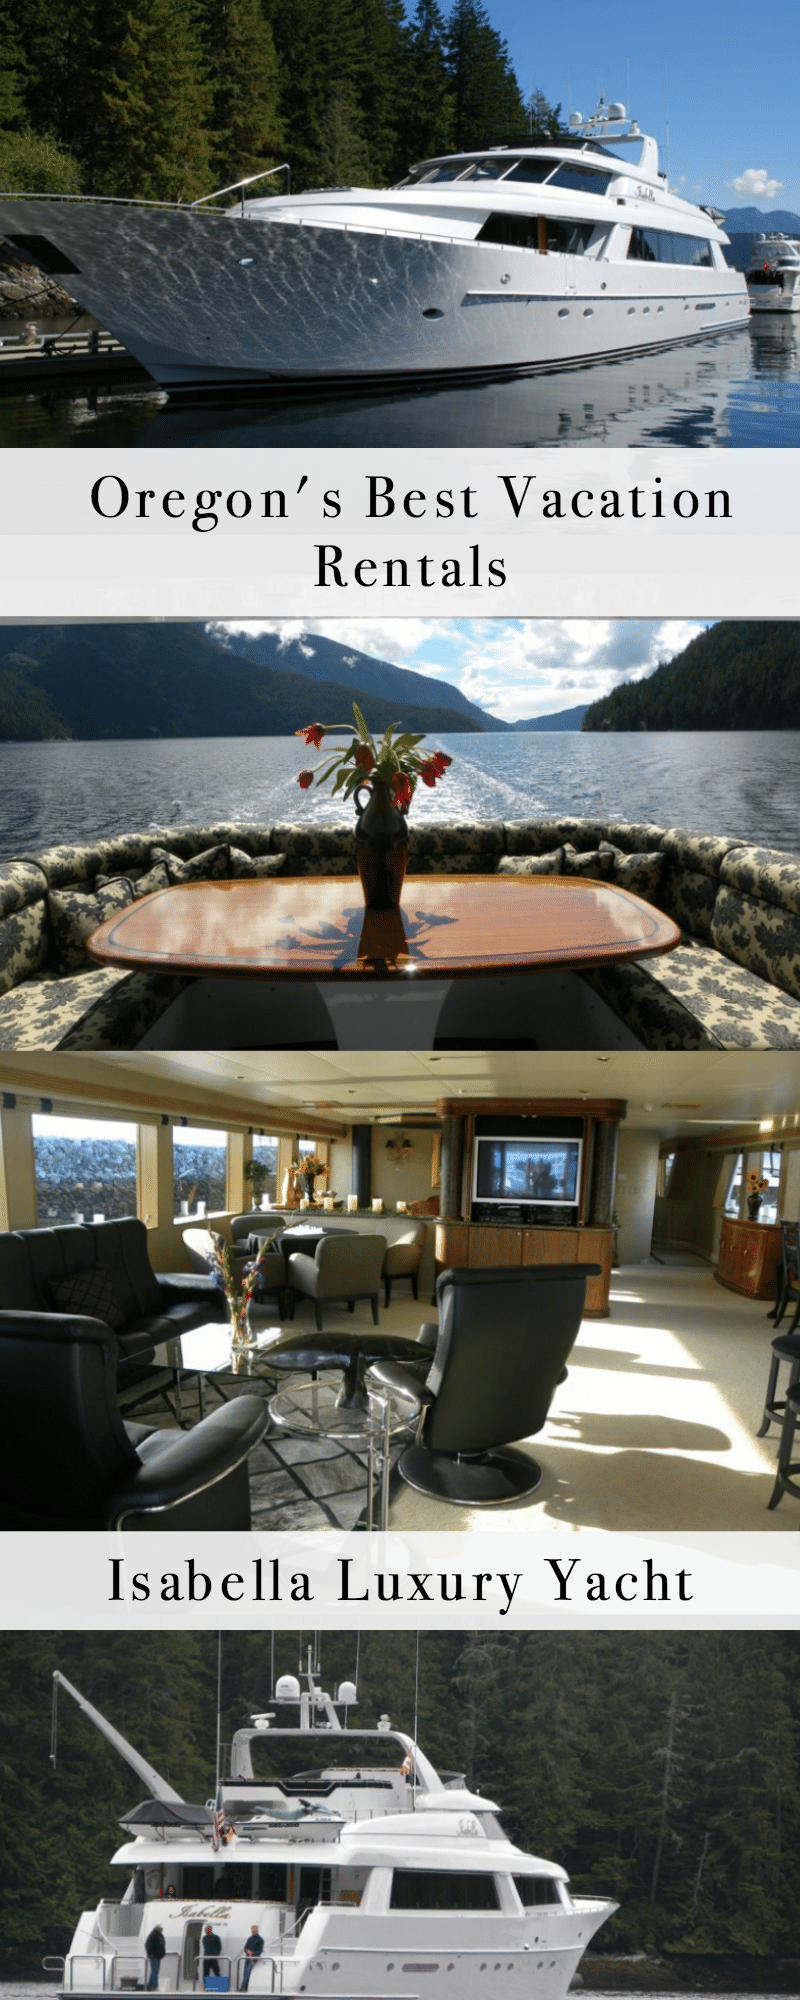 Oregon's Best Vacation rentals - Isabella Luxury Yacht